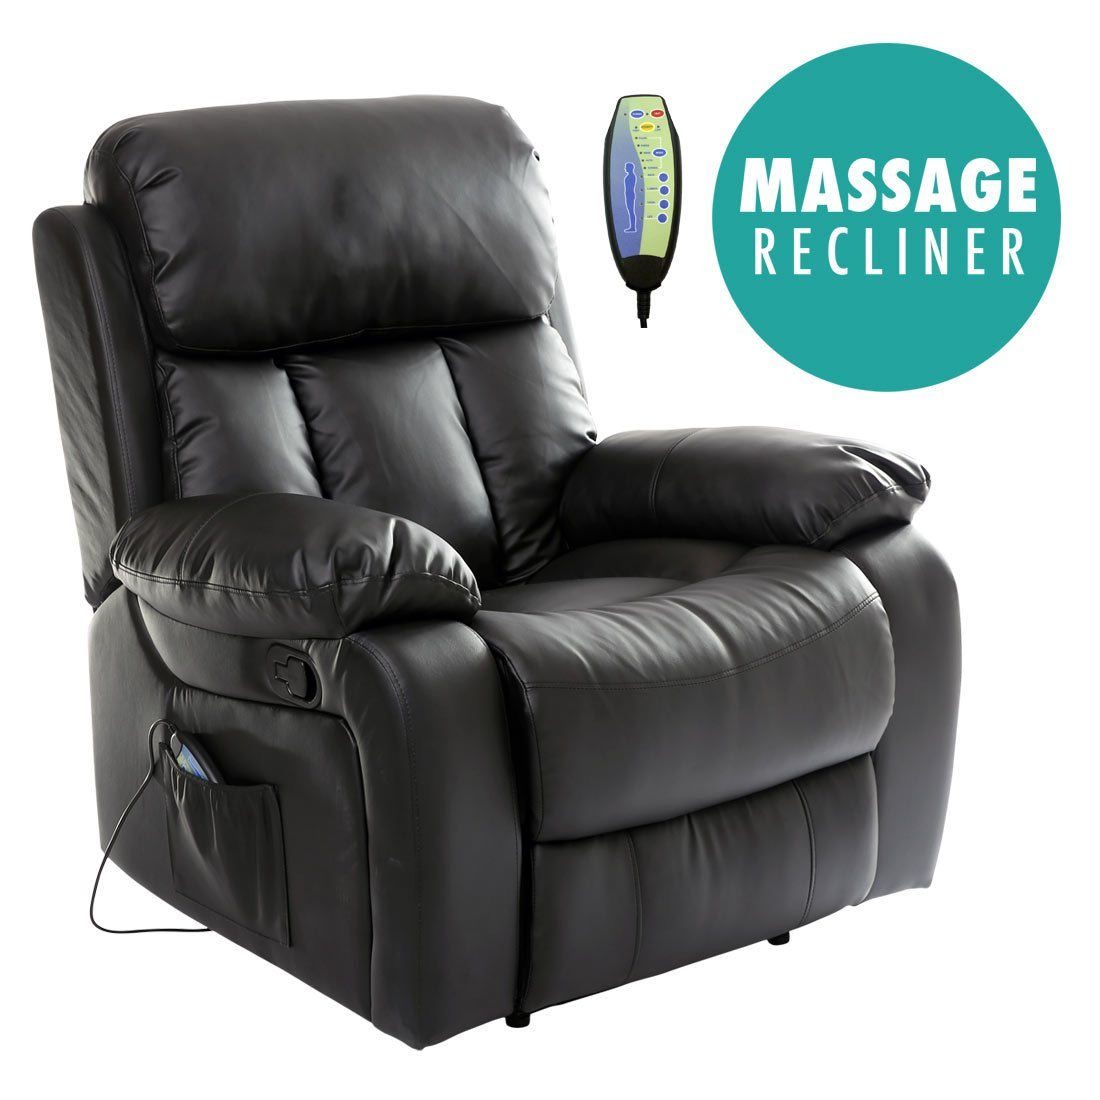 More4Homes (tm) CHESTER HEATED LEATHER MASSAGE RECLINER CHAIR SOFA LOUNGE  GAMING HOME ARMCHAIR (Black): Amazon.co.uk: Kitchen U0026 Home